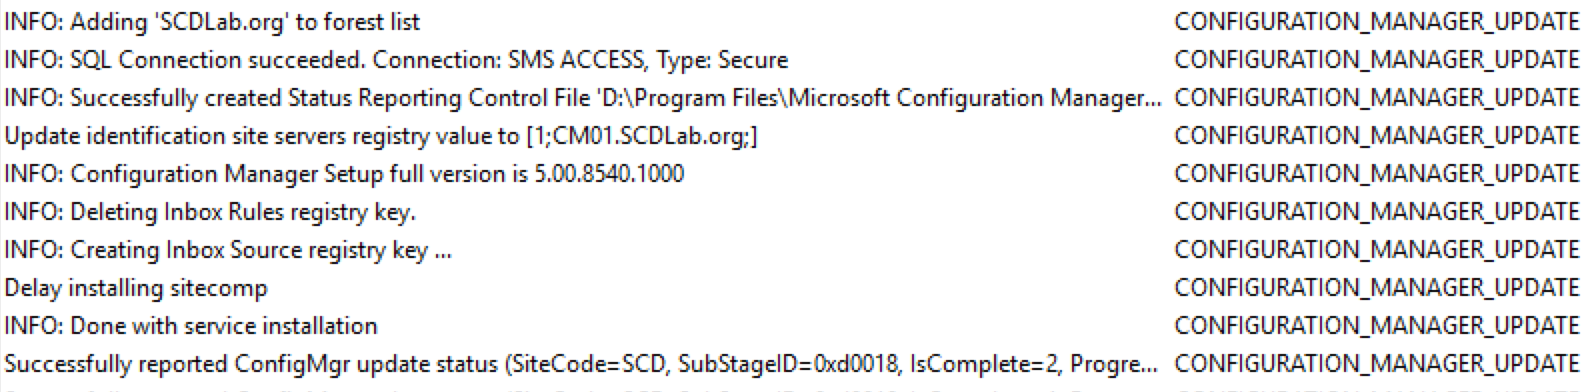 Step-by-Step SCCM 1706 Upgrade Guide